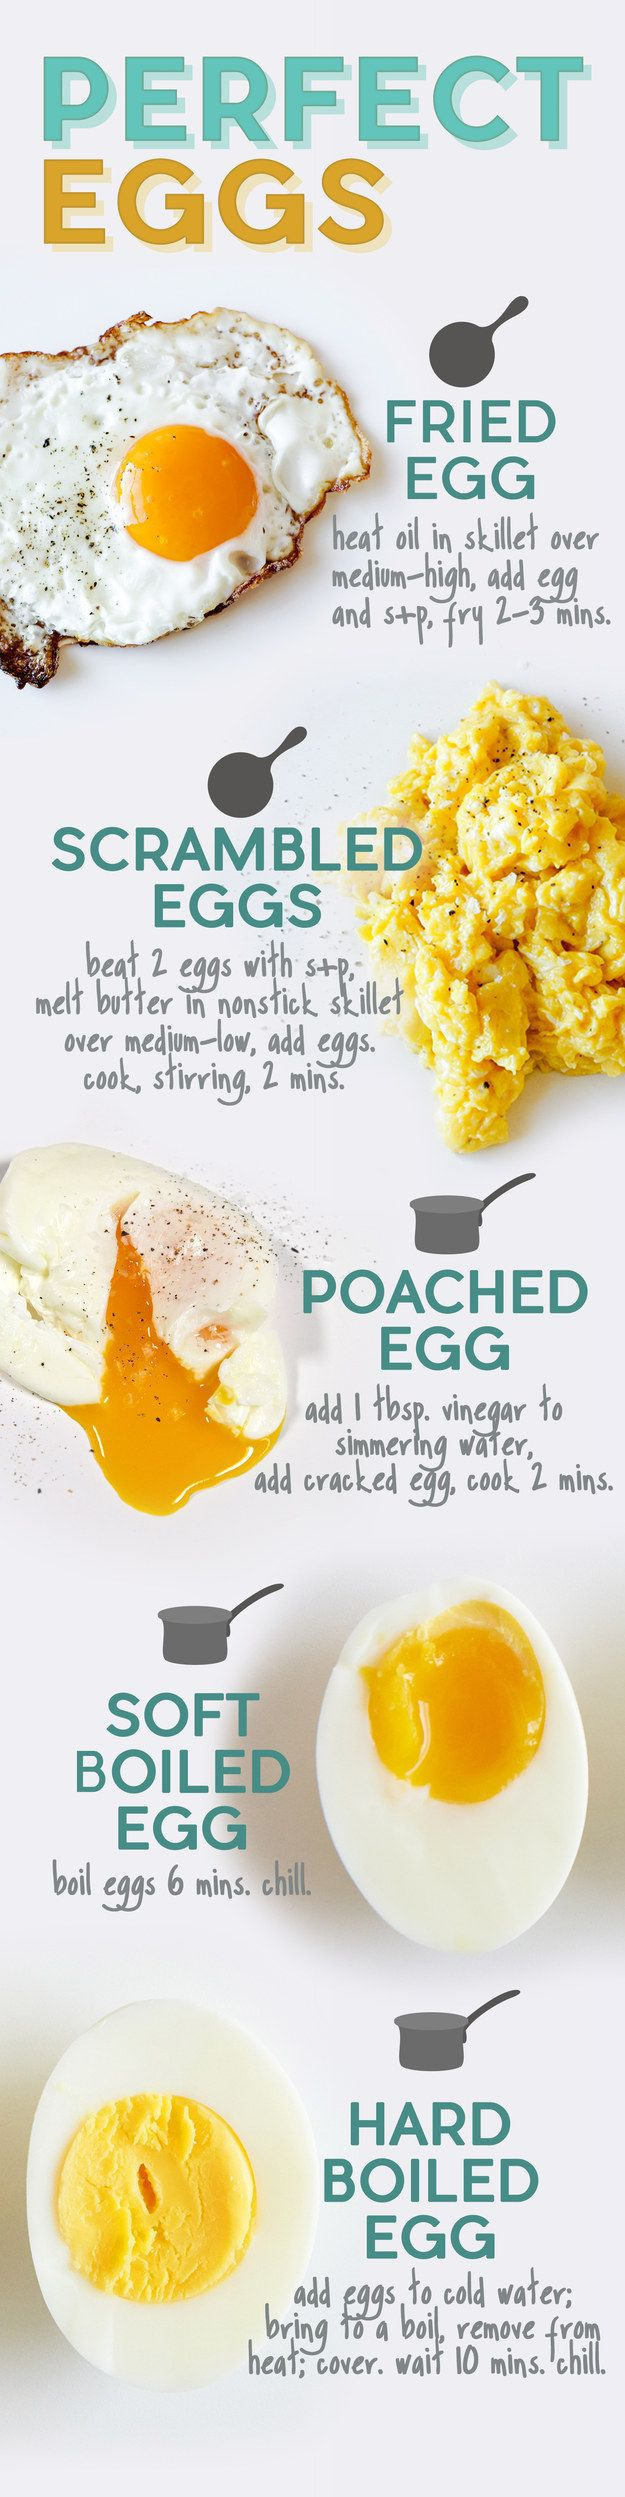 Learn how to cook eggs every way. | 7 Smart Tricks That'll Make Breakfast So Much Better